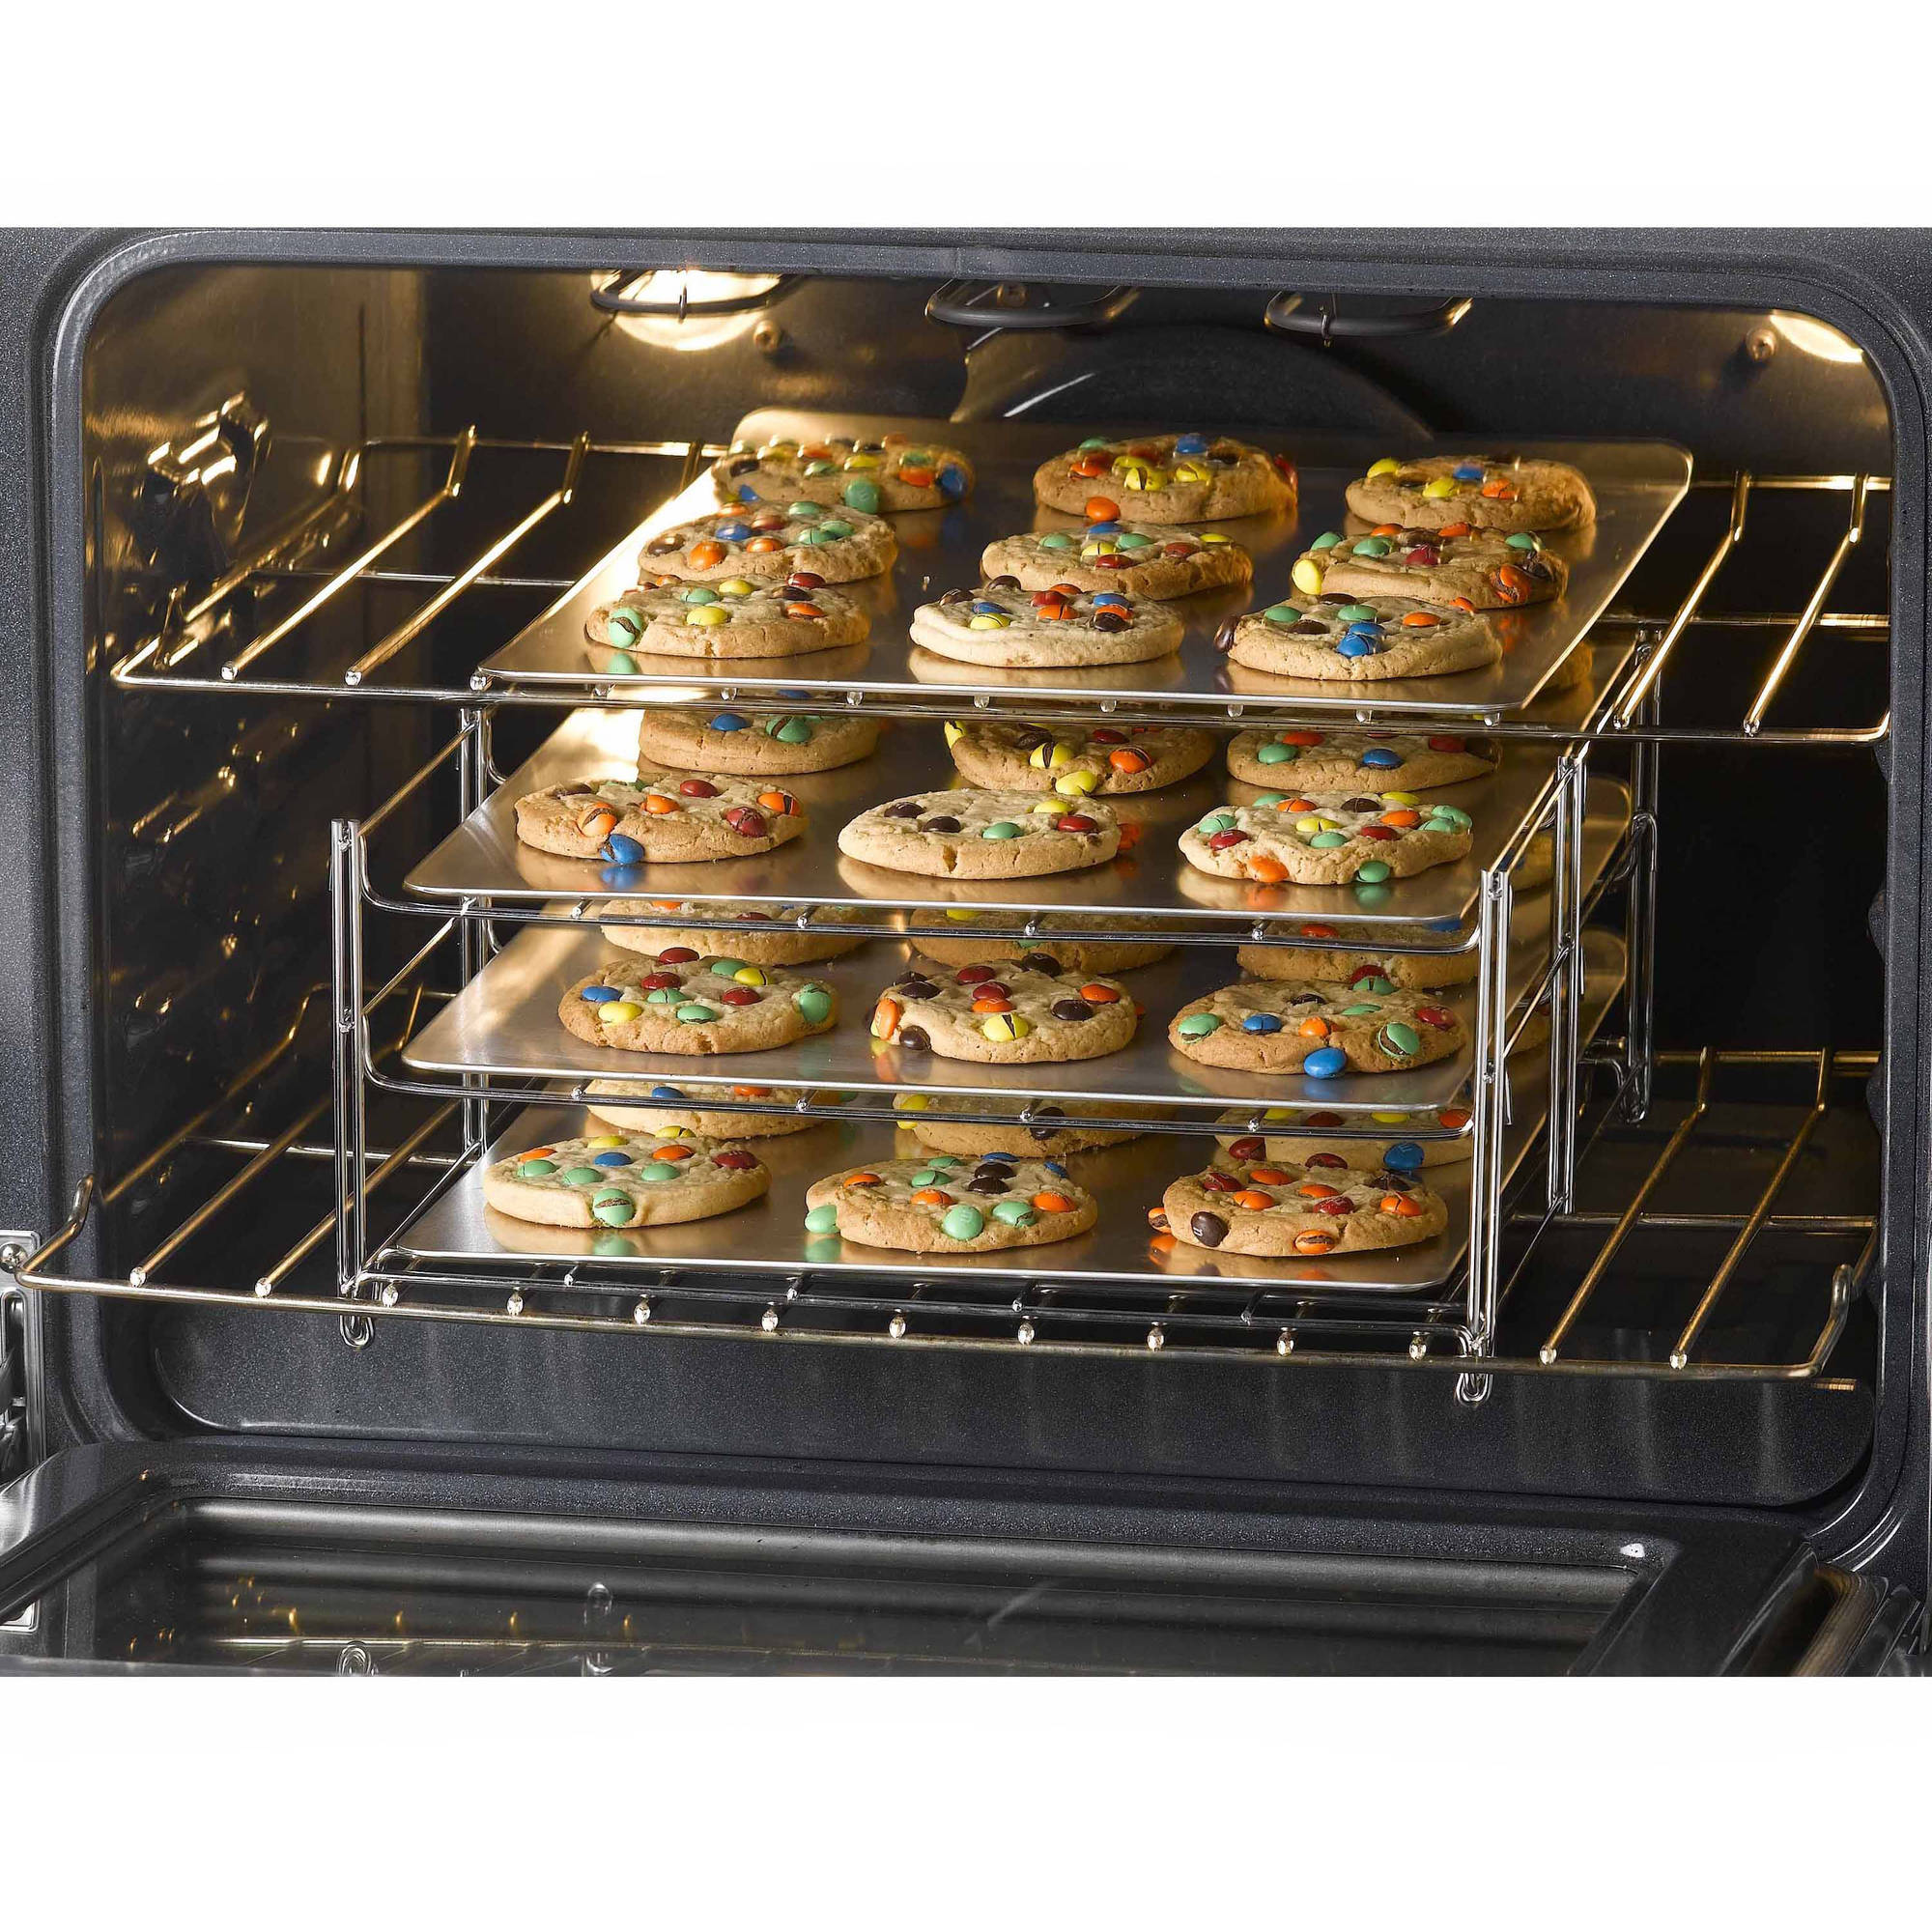 Betty Crocker Oven Baking Rack